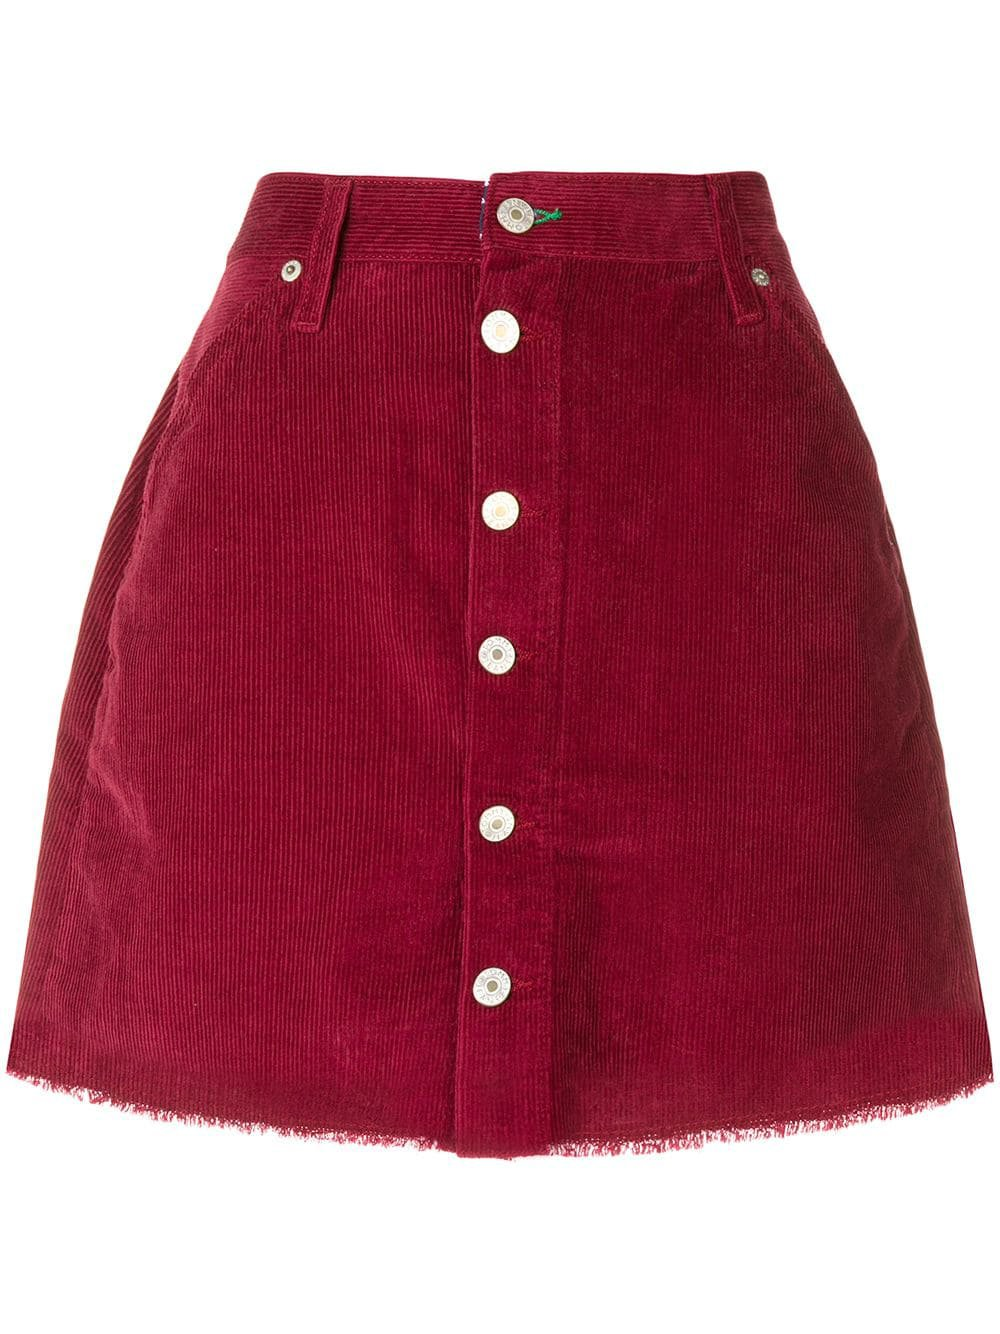 Tommy Jeans corduroy buttoned skirt £99 - Shop Online. Same Day Delivery in London